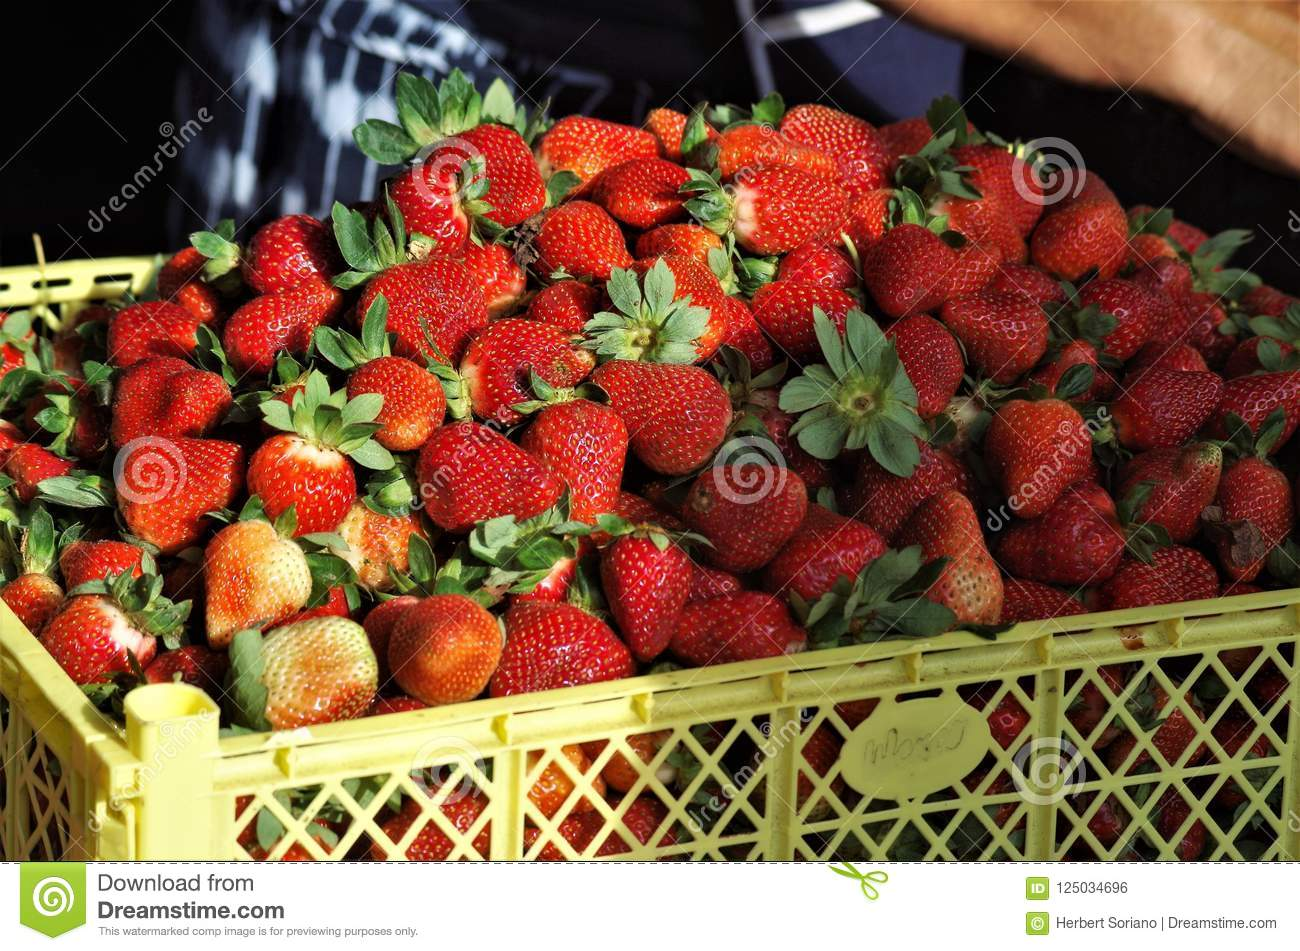 Strawberry Display Pictures